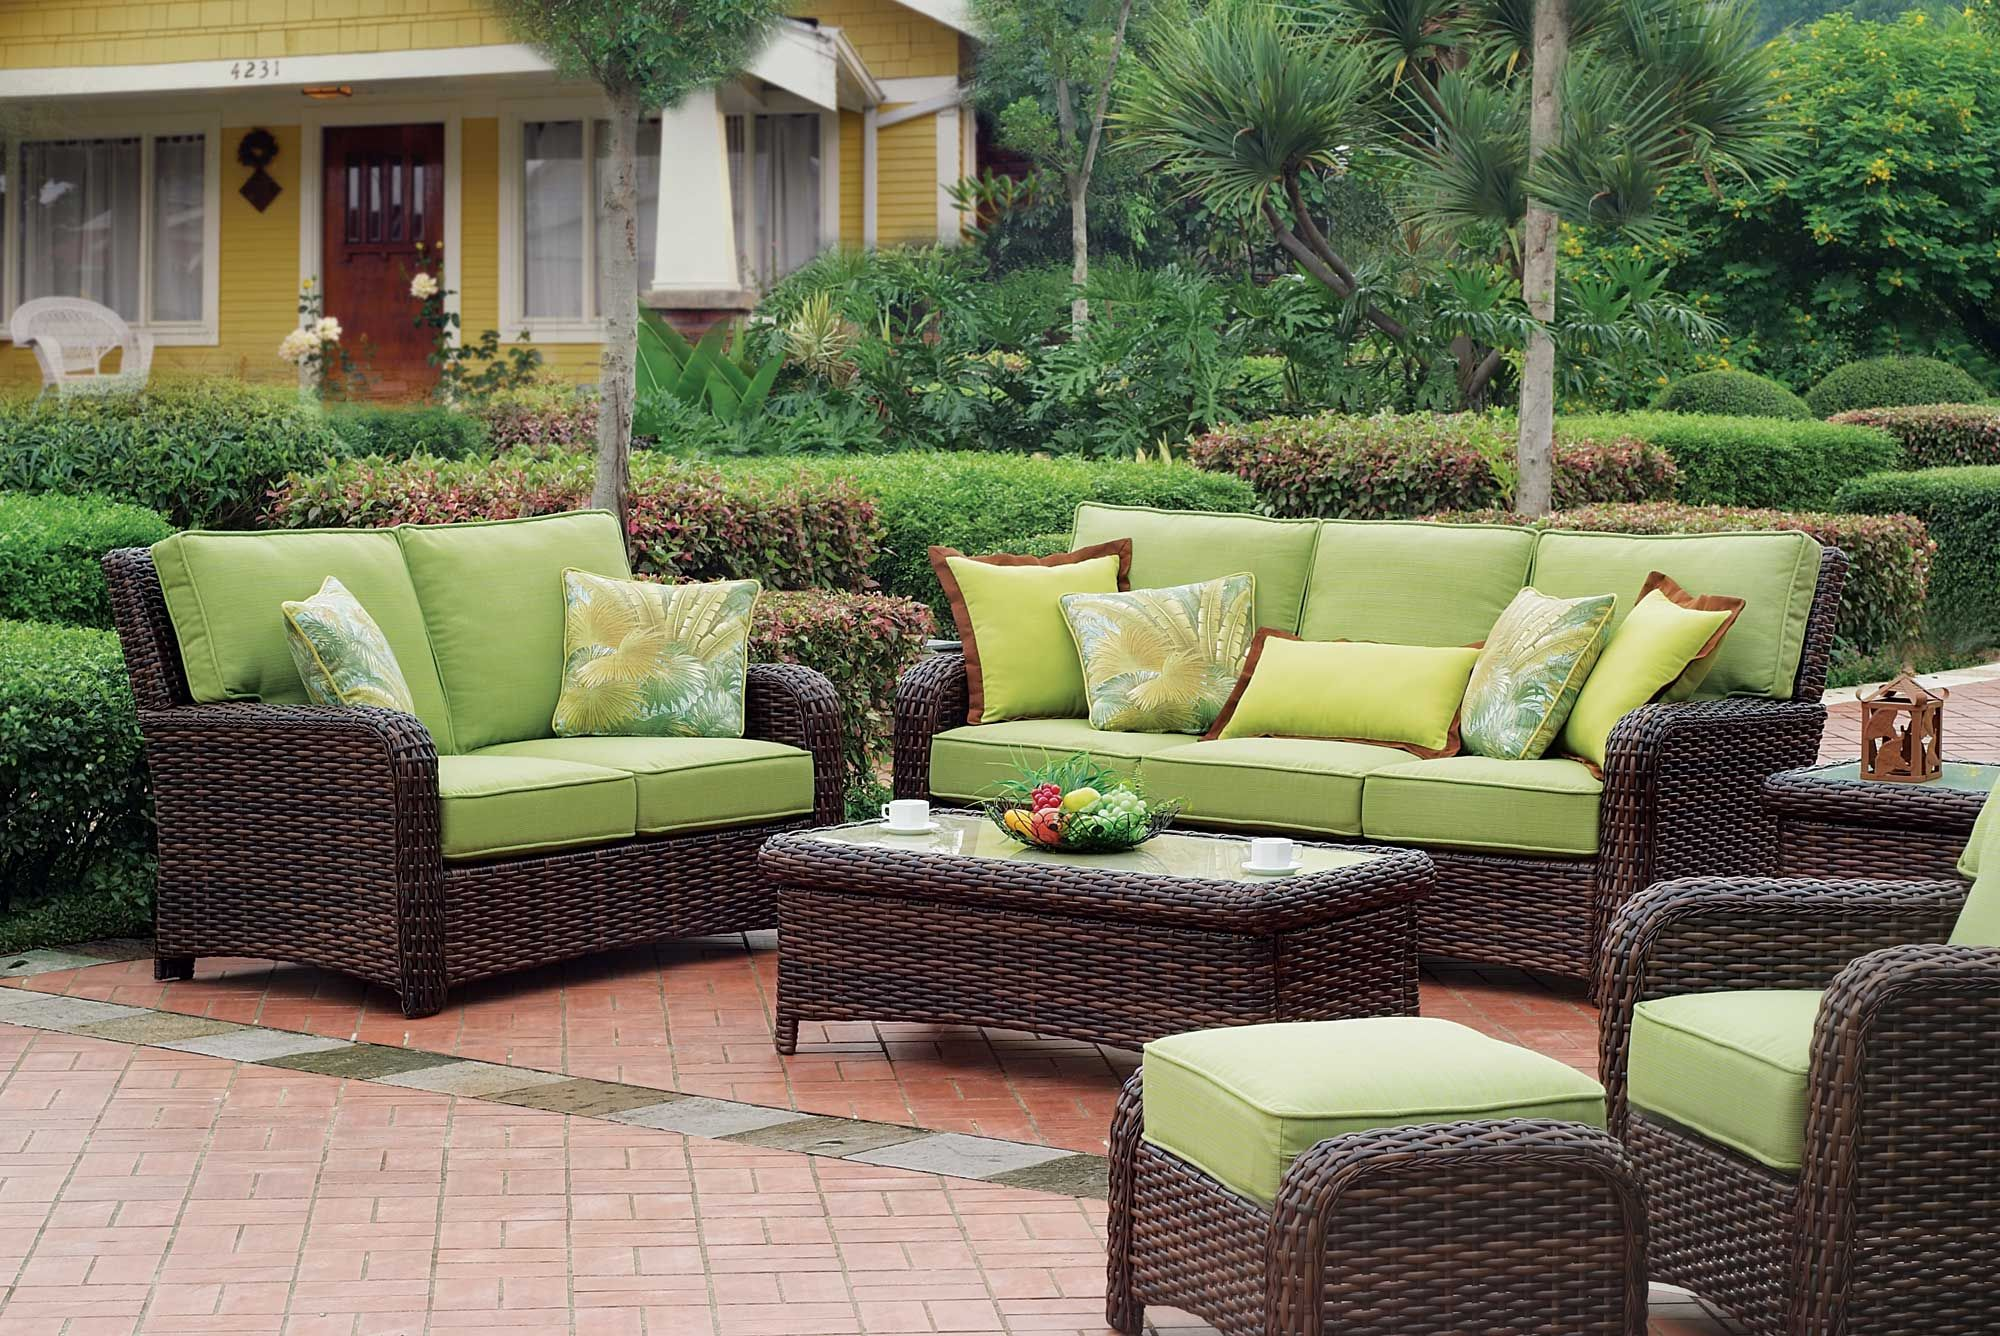 Outdoor Wicker Patio Furniture Outdoor Wicker Patio Furniture